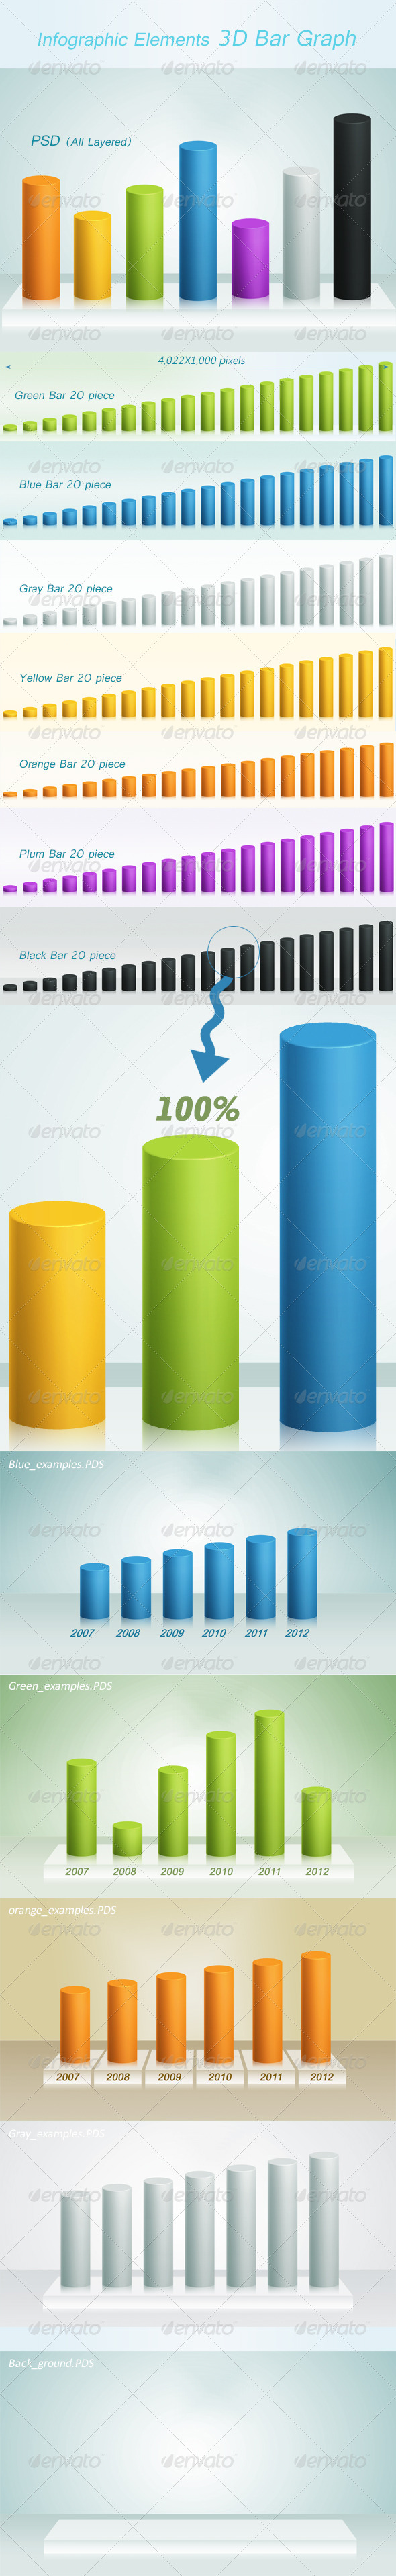 GraphicRiver 3D Bar Graph 6487121